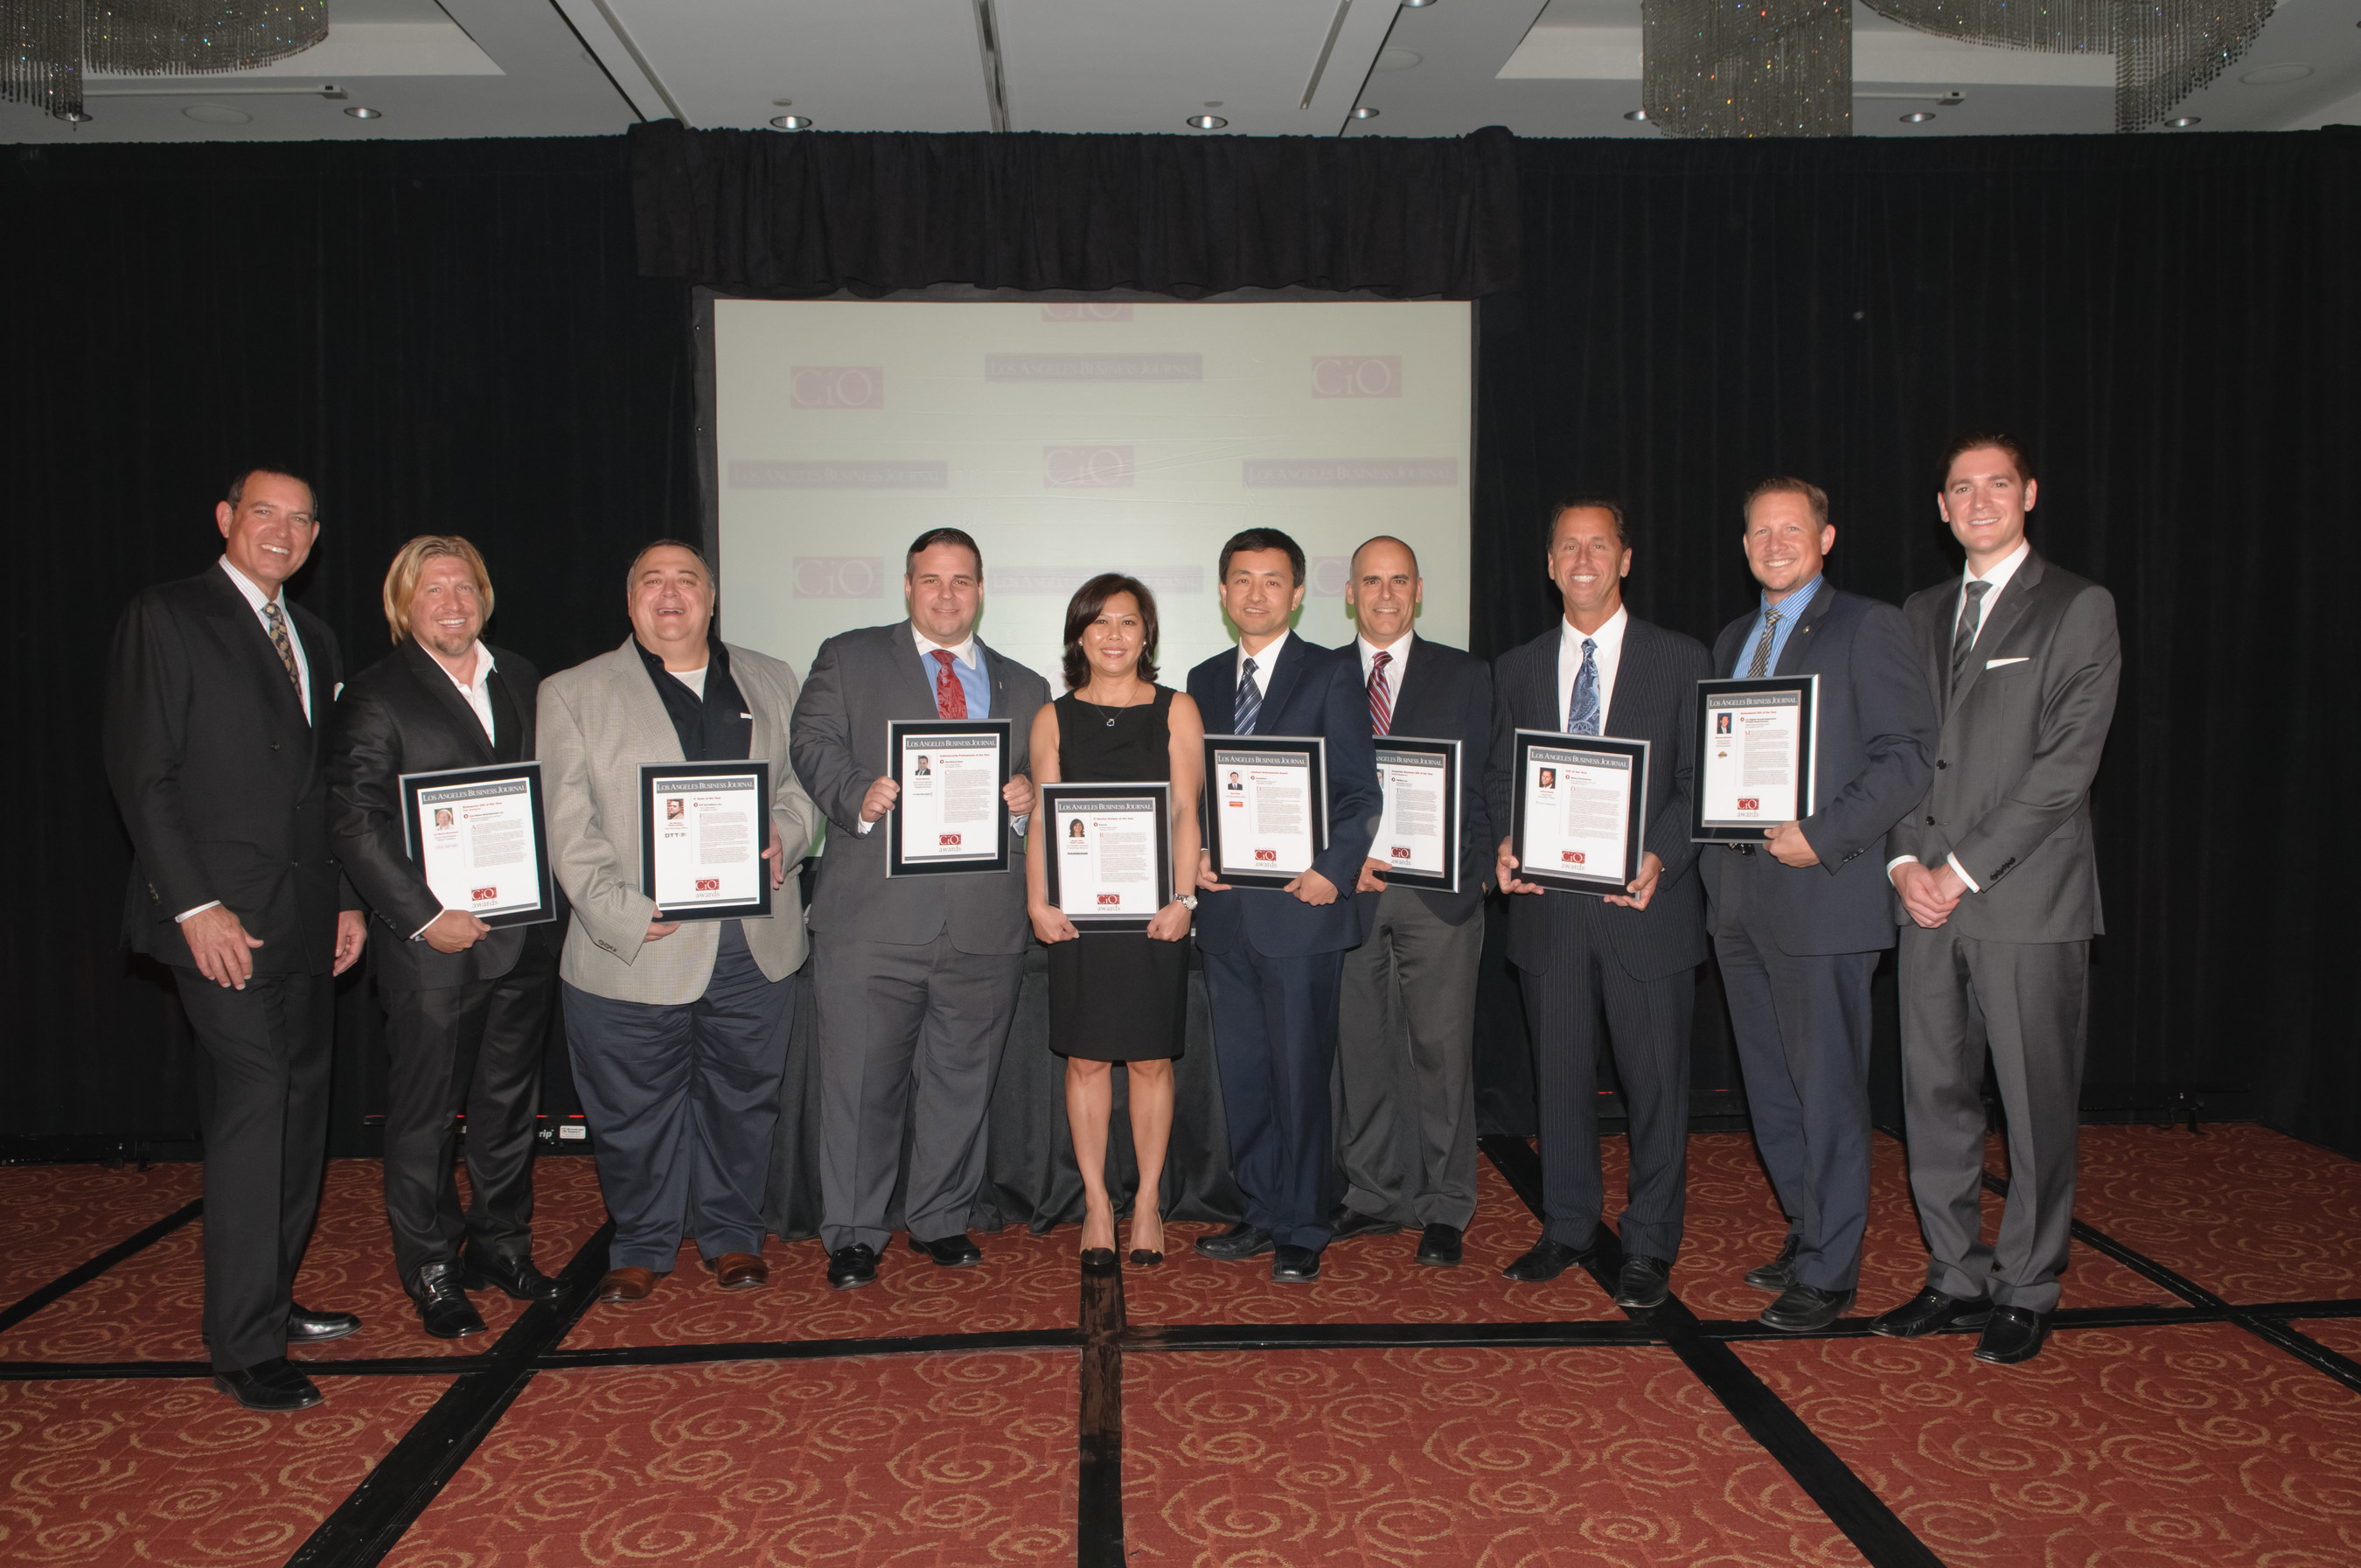 WILLIAMS DATA MANAGEMENT CO-PRESENTS LOS ANGELES BUSINESS JOURNAL'S 2015 CIO/CTO'S OF THE YEAR AWARD WINNERS